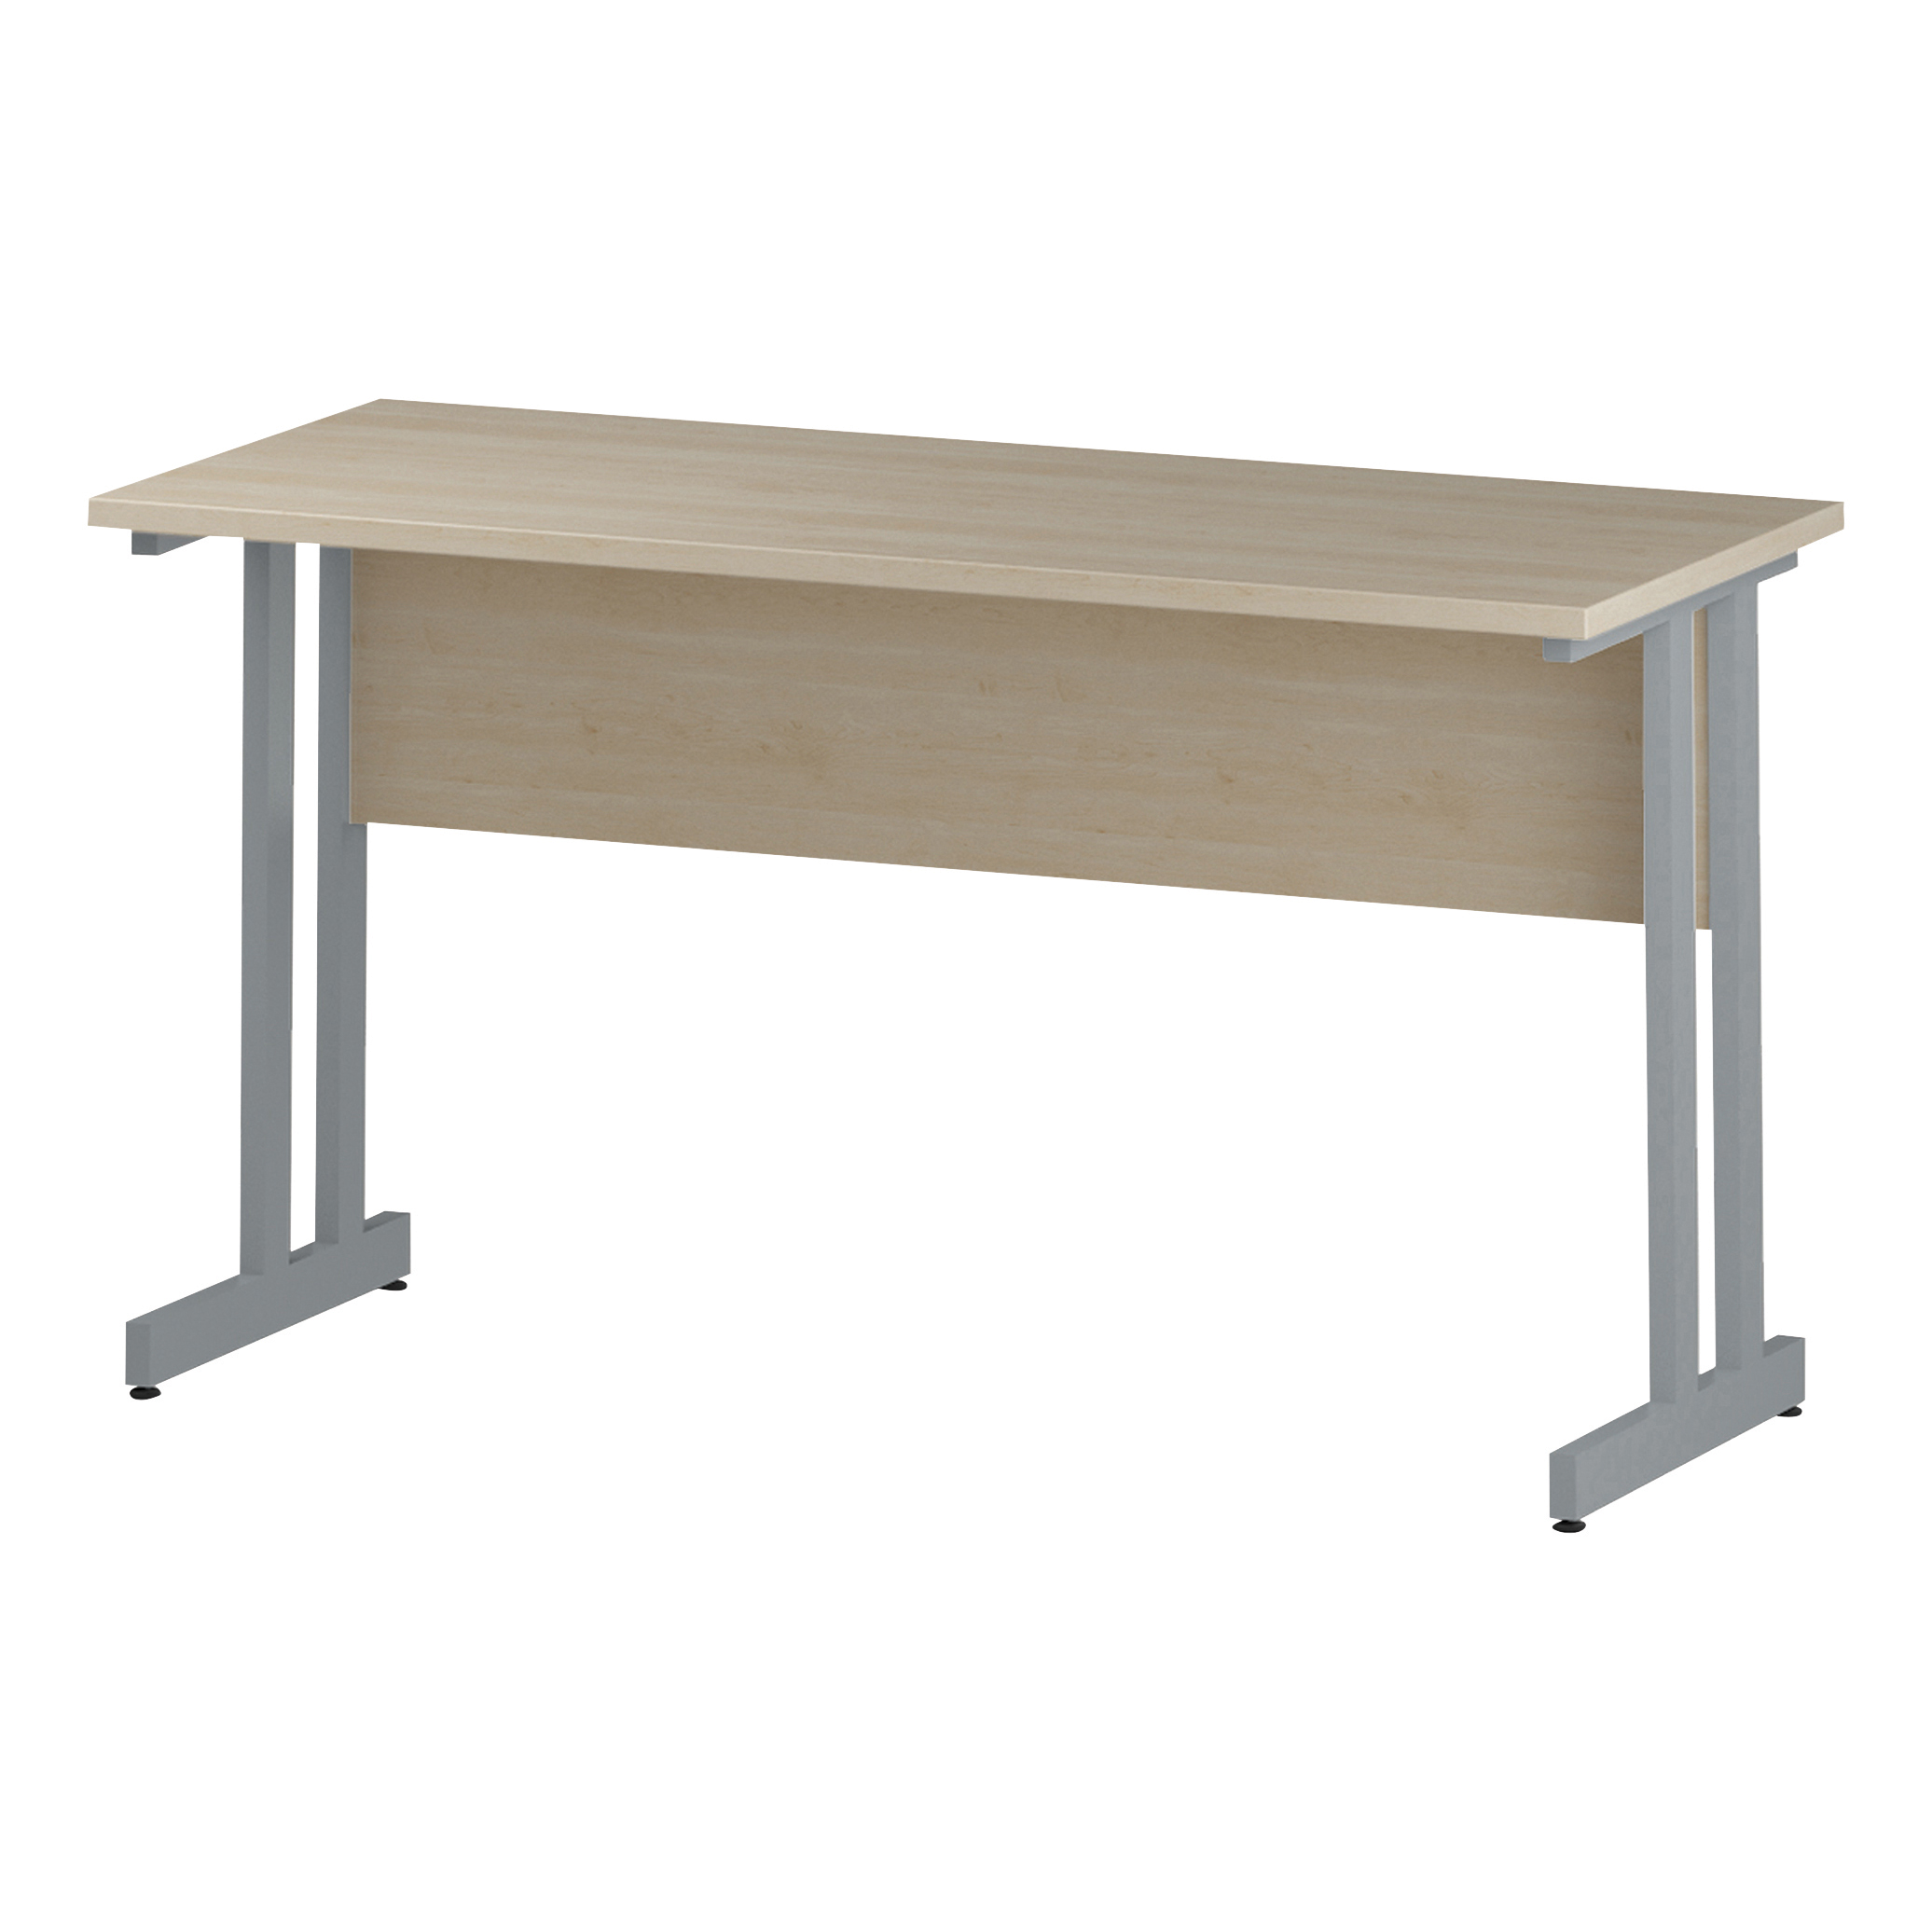 Trexus Rectangular Slim Desk Silver Cantilever Leg 1400x600mm Maple Ref I002423